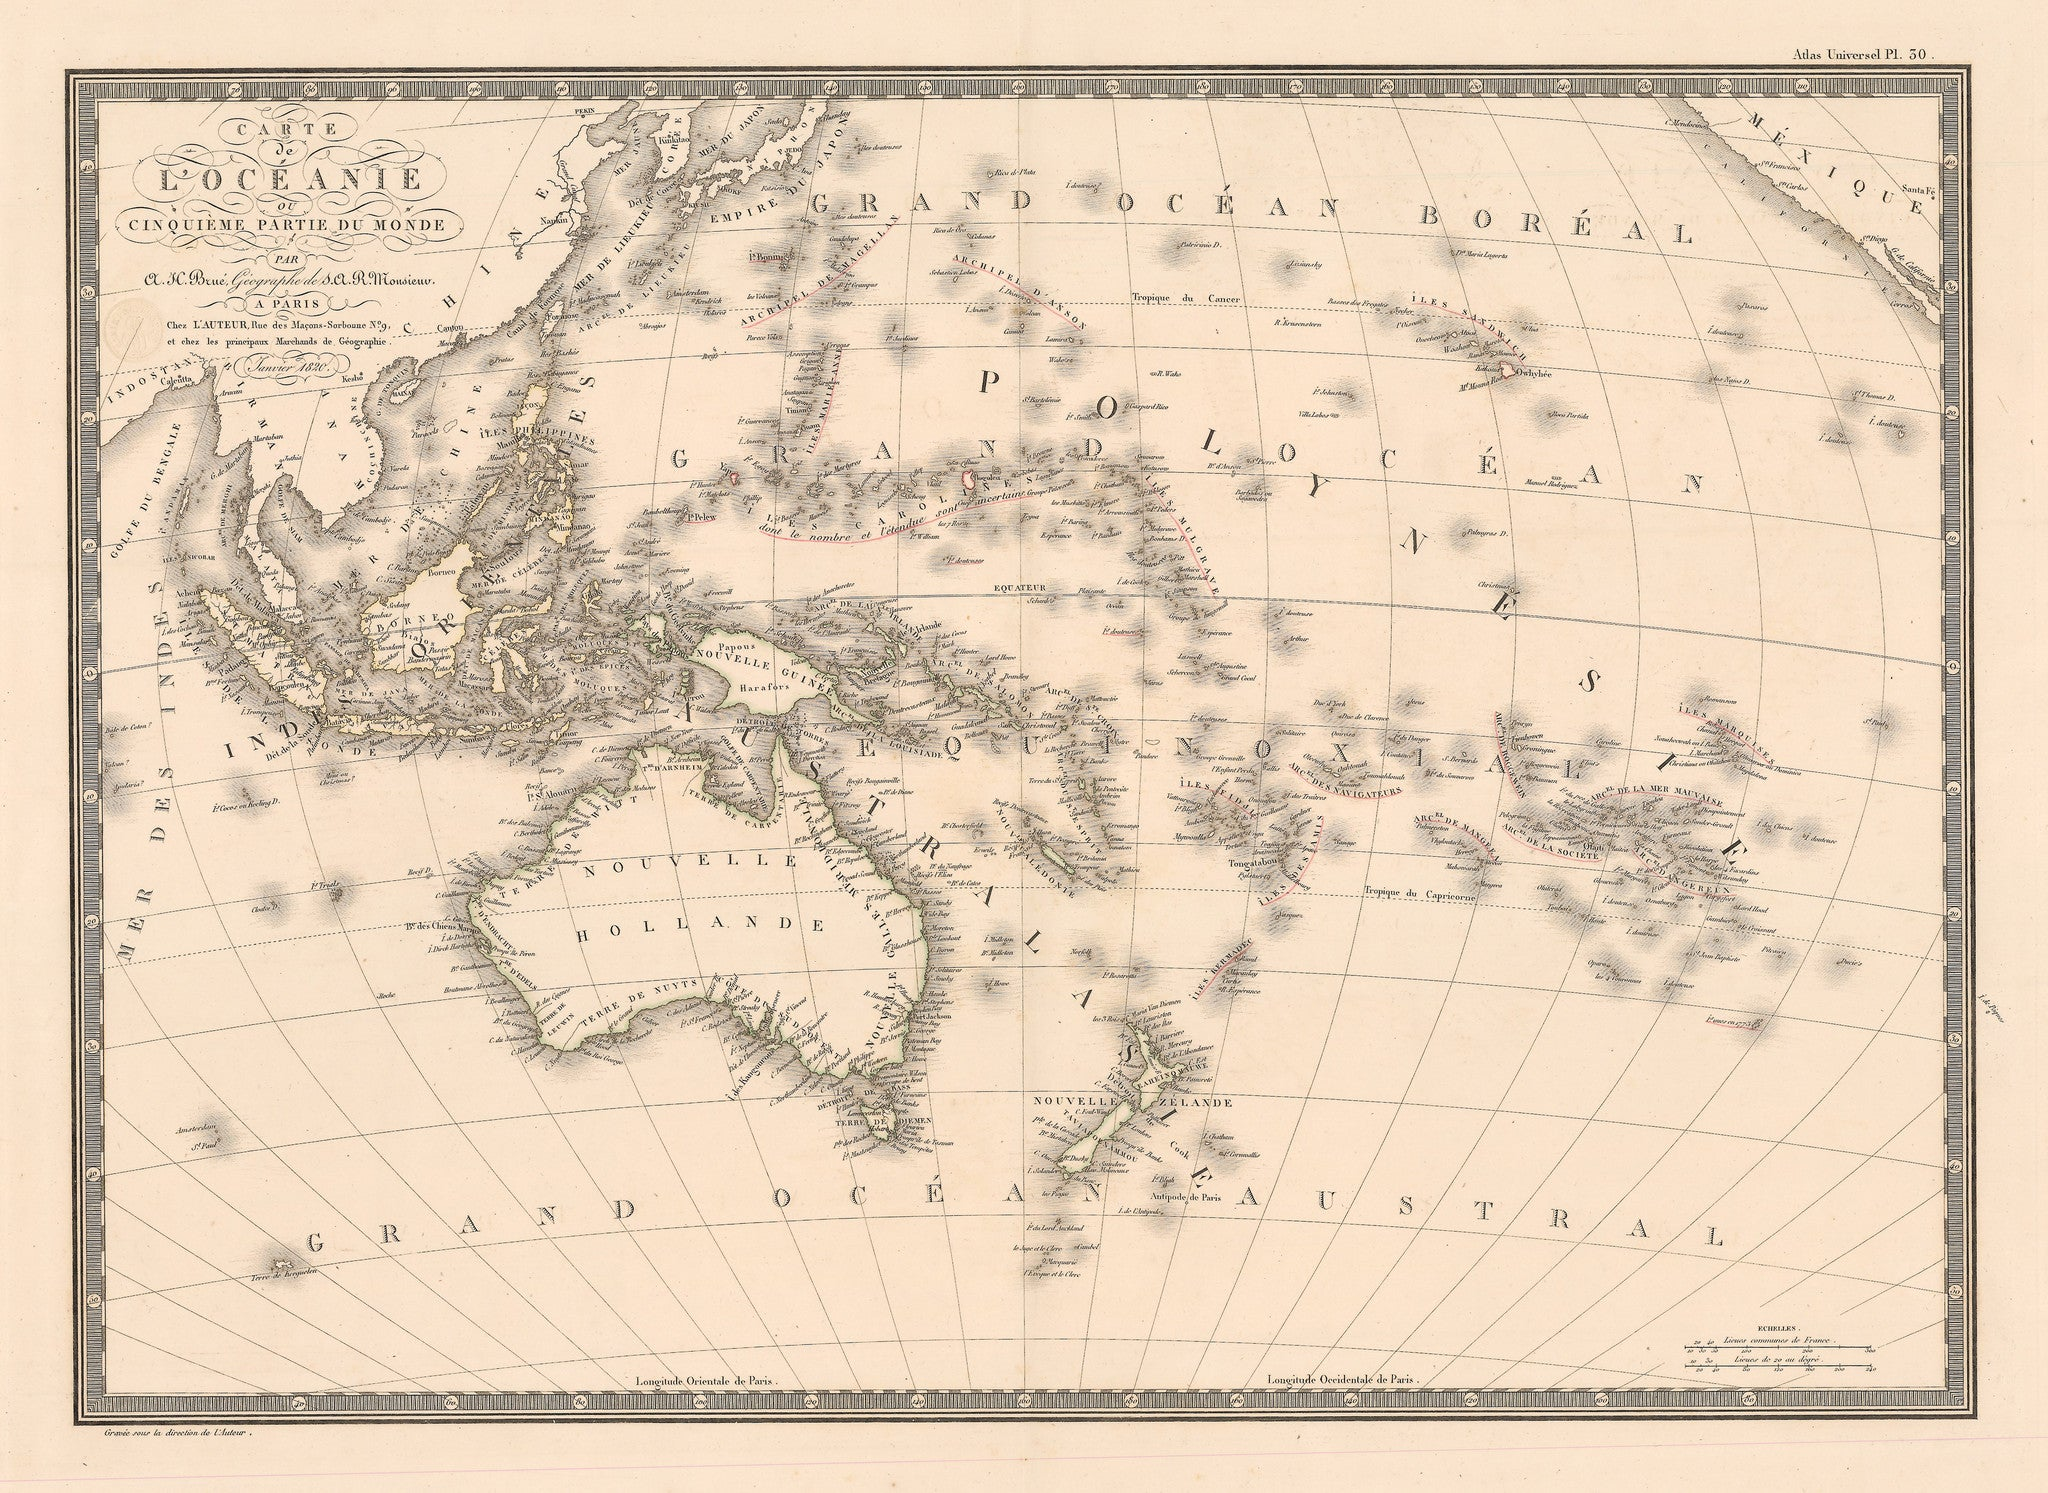 Authentic Antique Map of Australia and the islands of the Pacific Ocean: Carte de l'Oceanie ou Cinquieme Partie du Monde By: Adrien Hubert BrueDate: 1820 (Dated) Paris